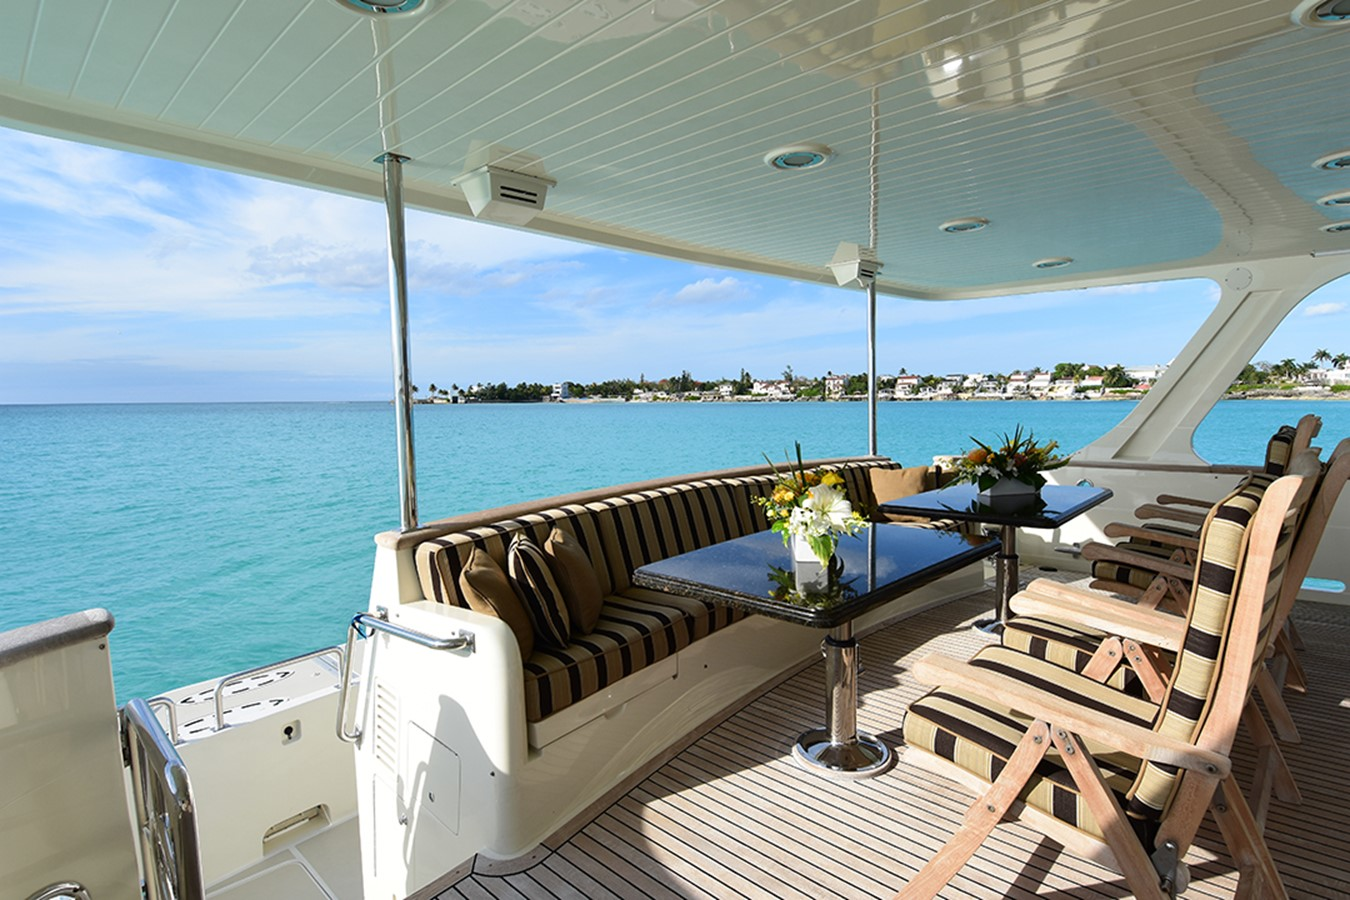 Aft Deck 2007 OFFSHORE YACHTS Voyager Motor Yacht 2535014